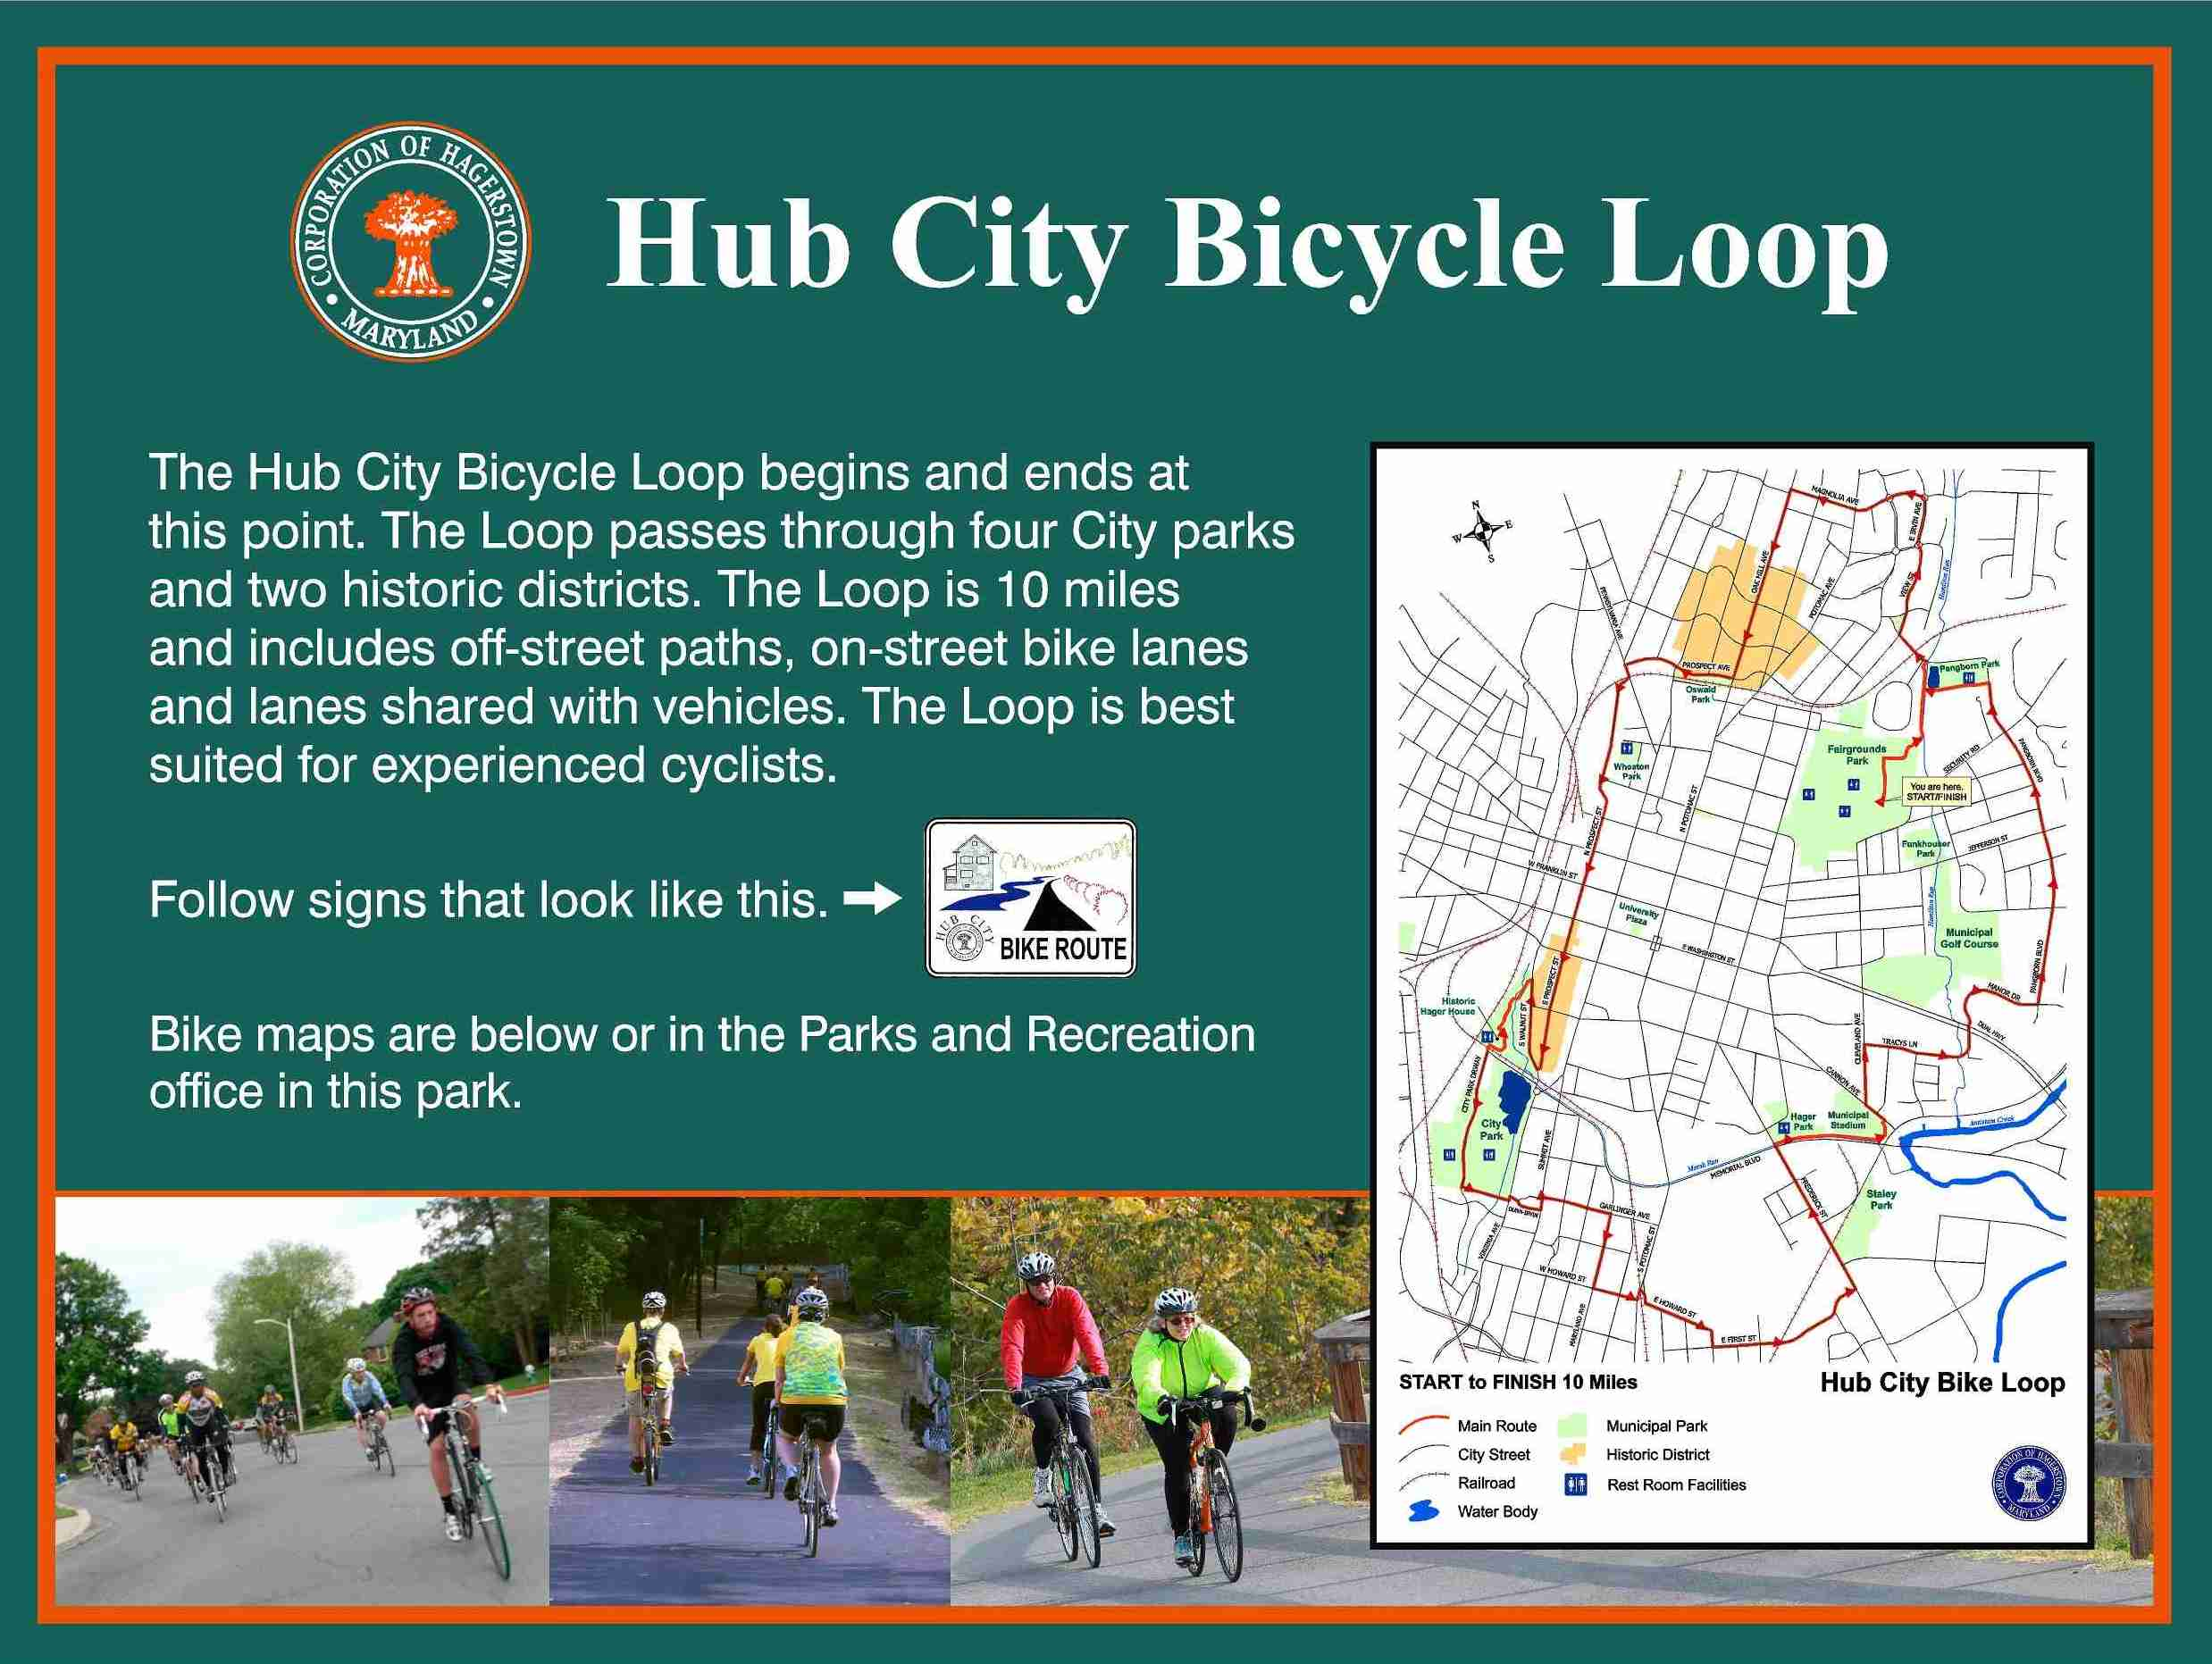 HUB CITY BICYCLE LOOP sign